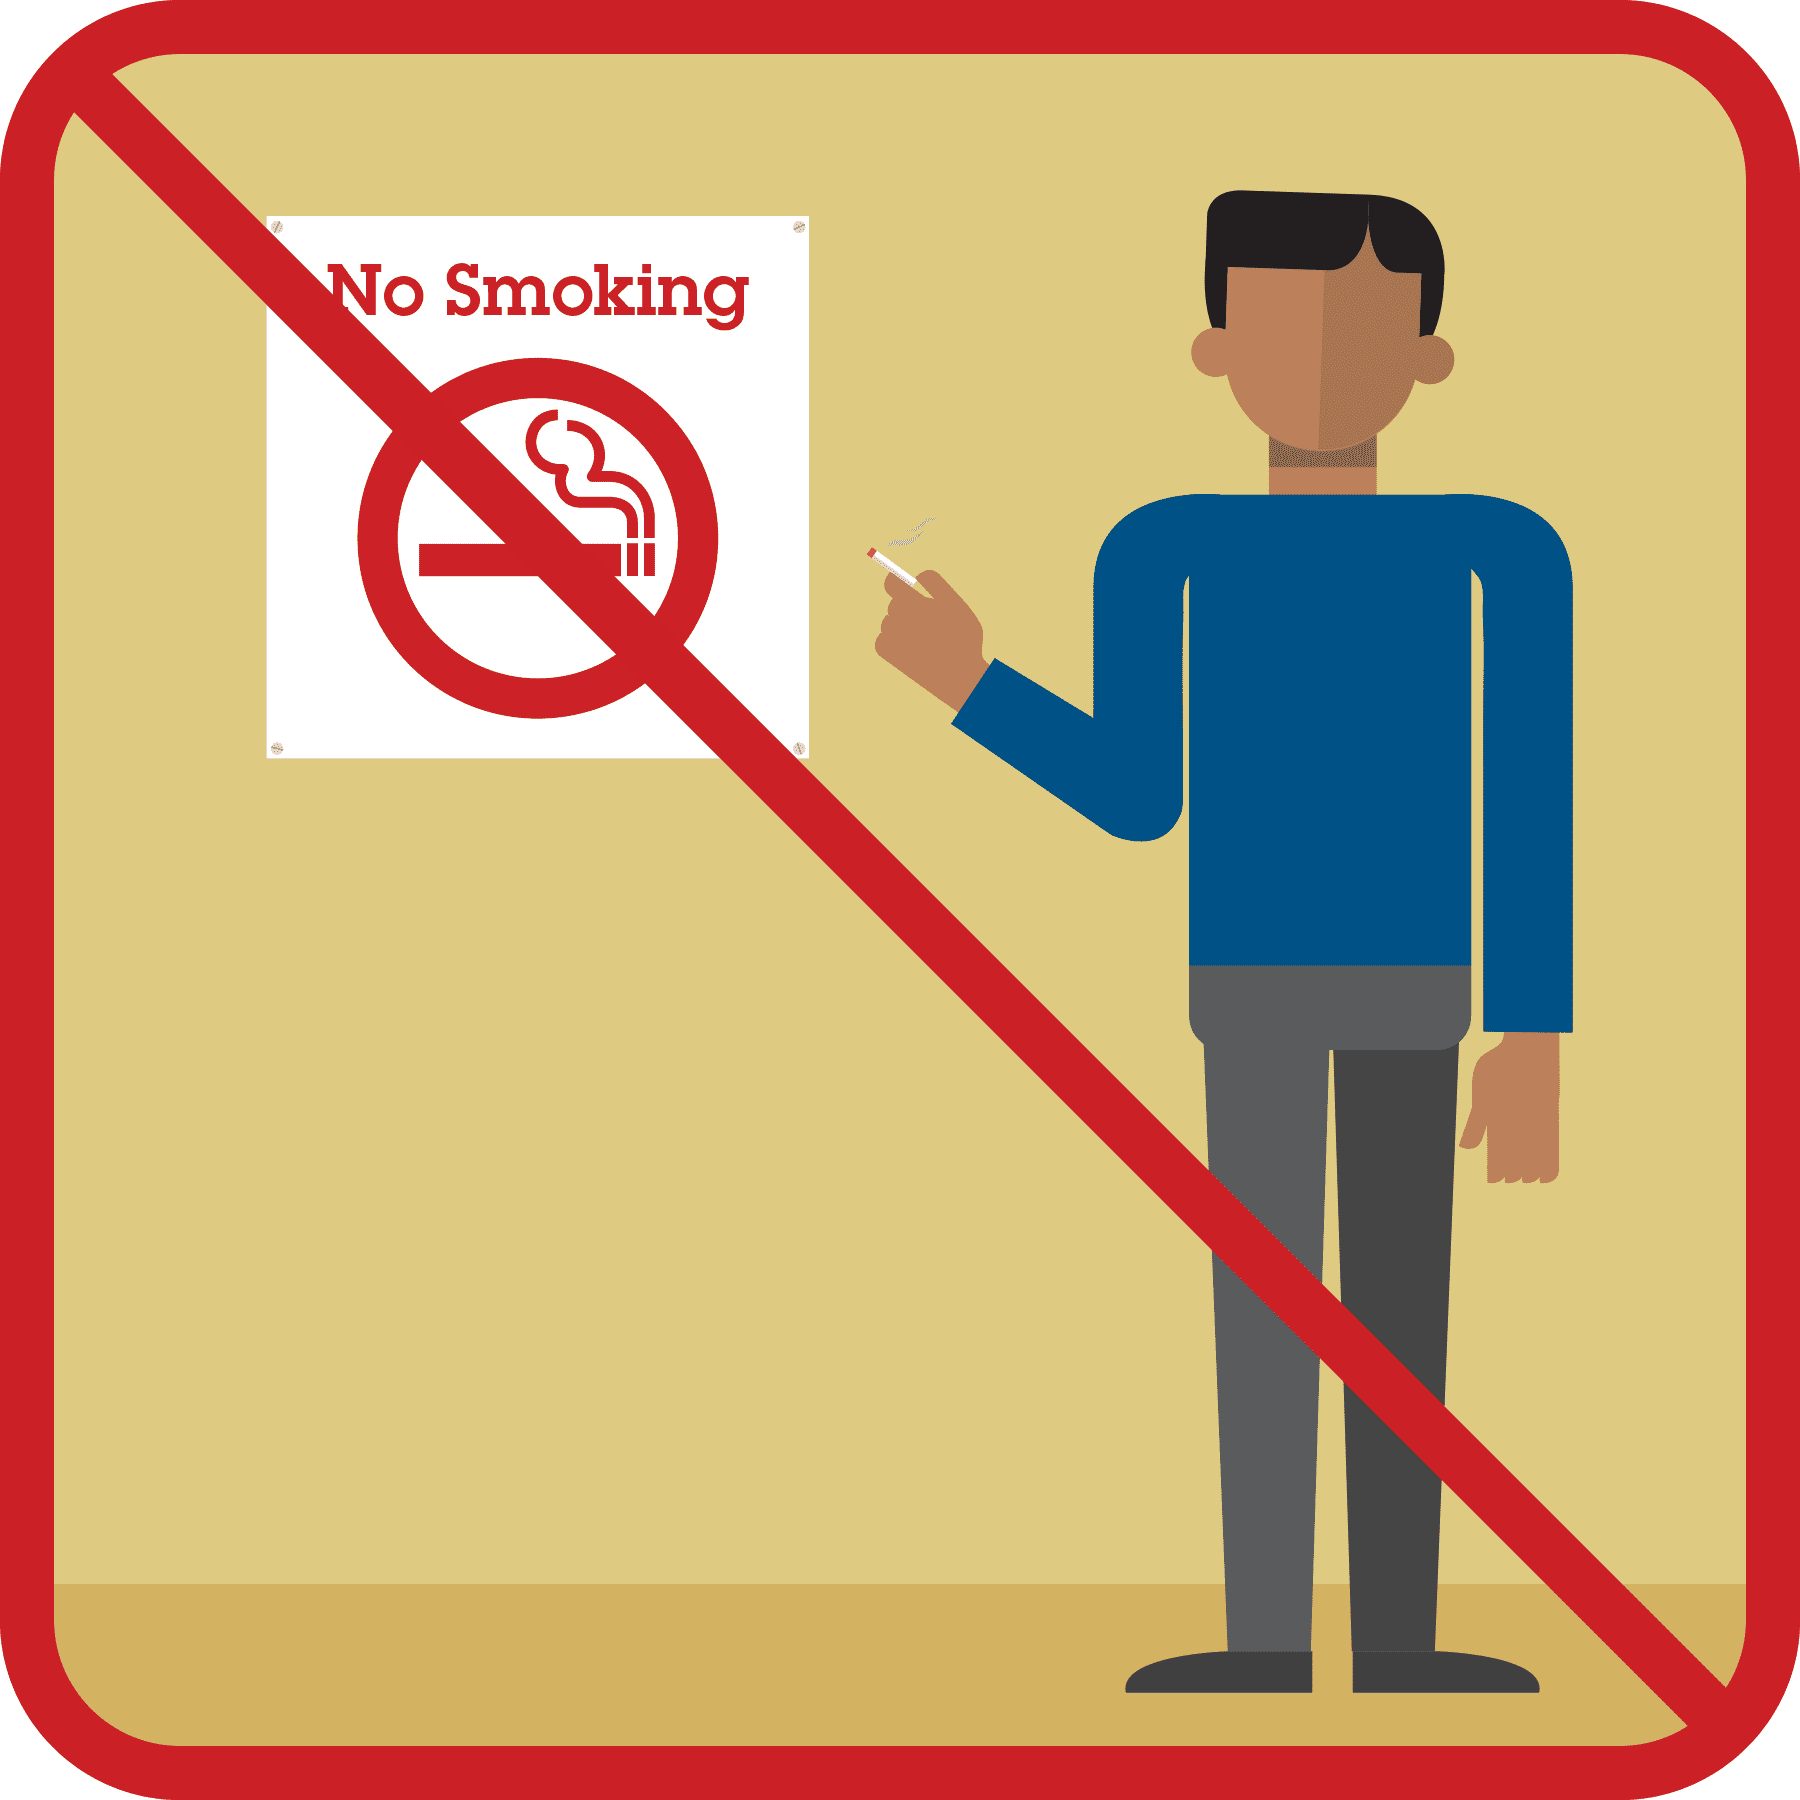 Man standing with a cigarette in front of a no smoking sign. A red x appears.